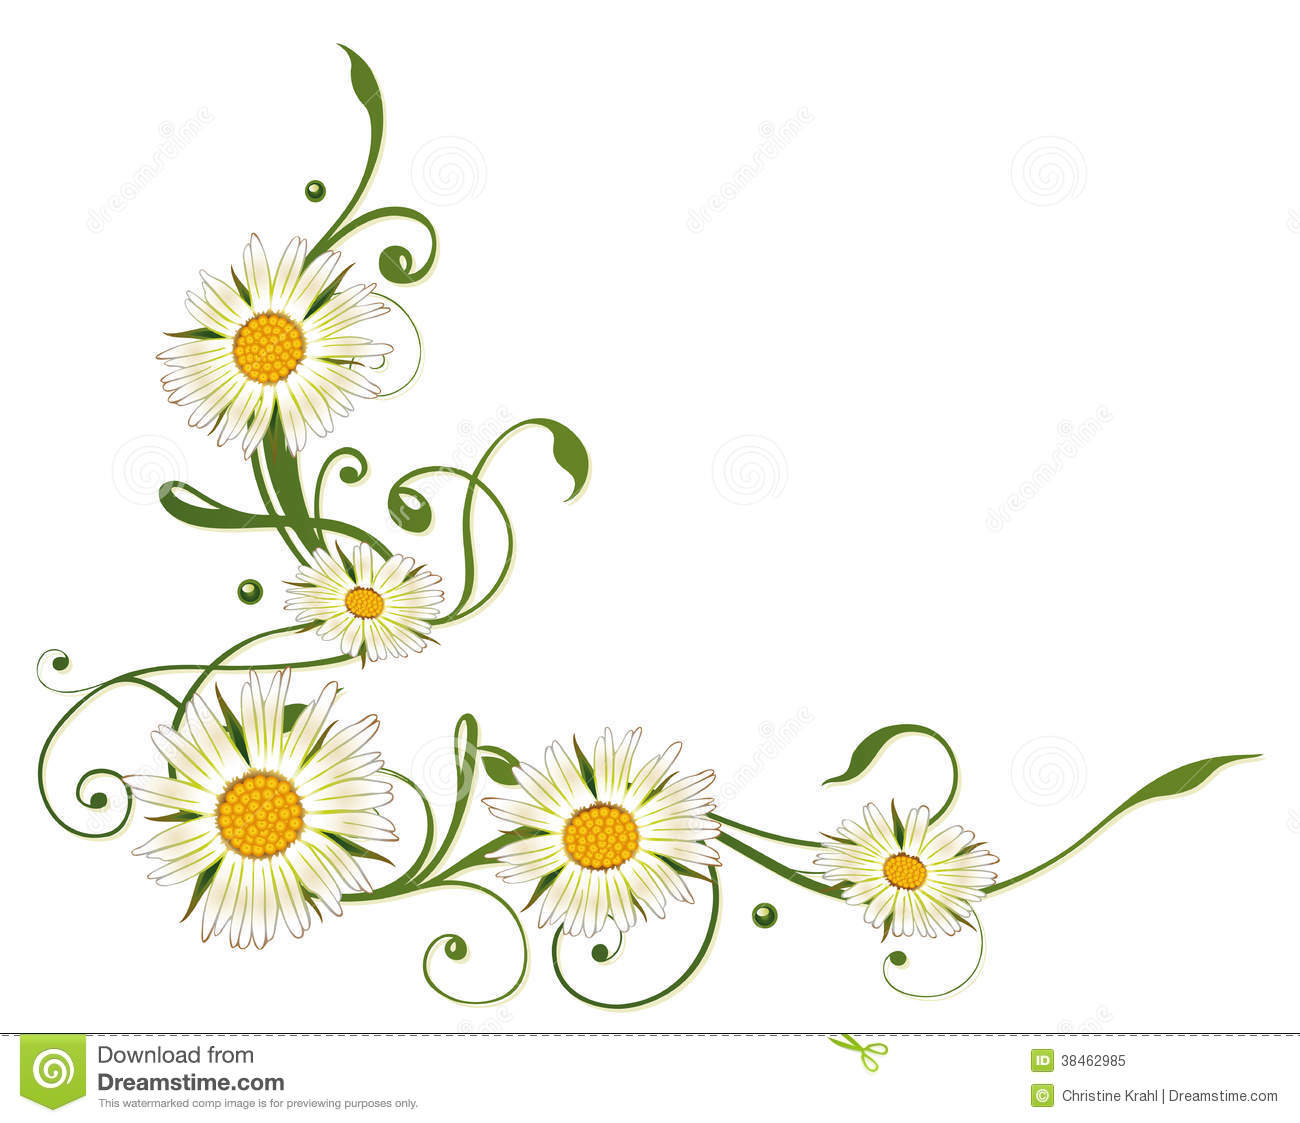 Marguerite clipart #7, Download drawings